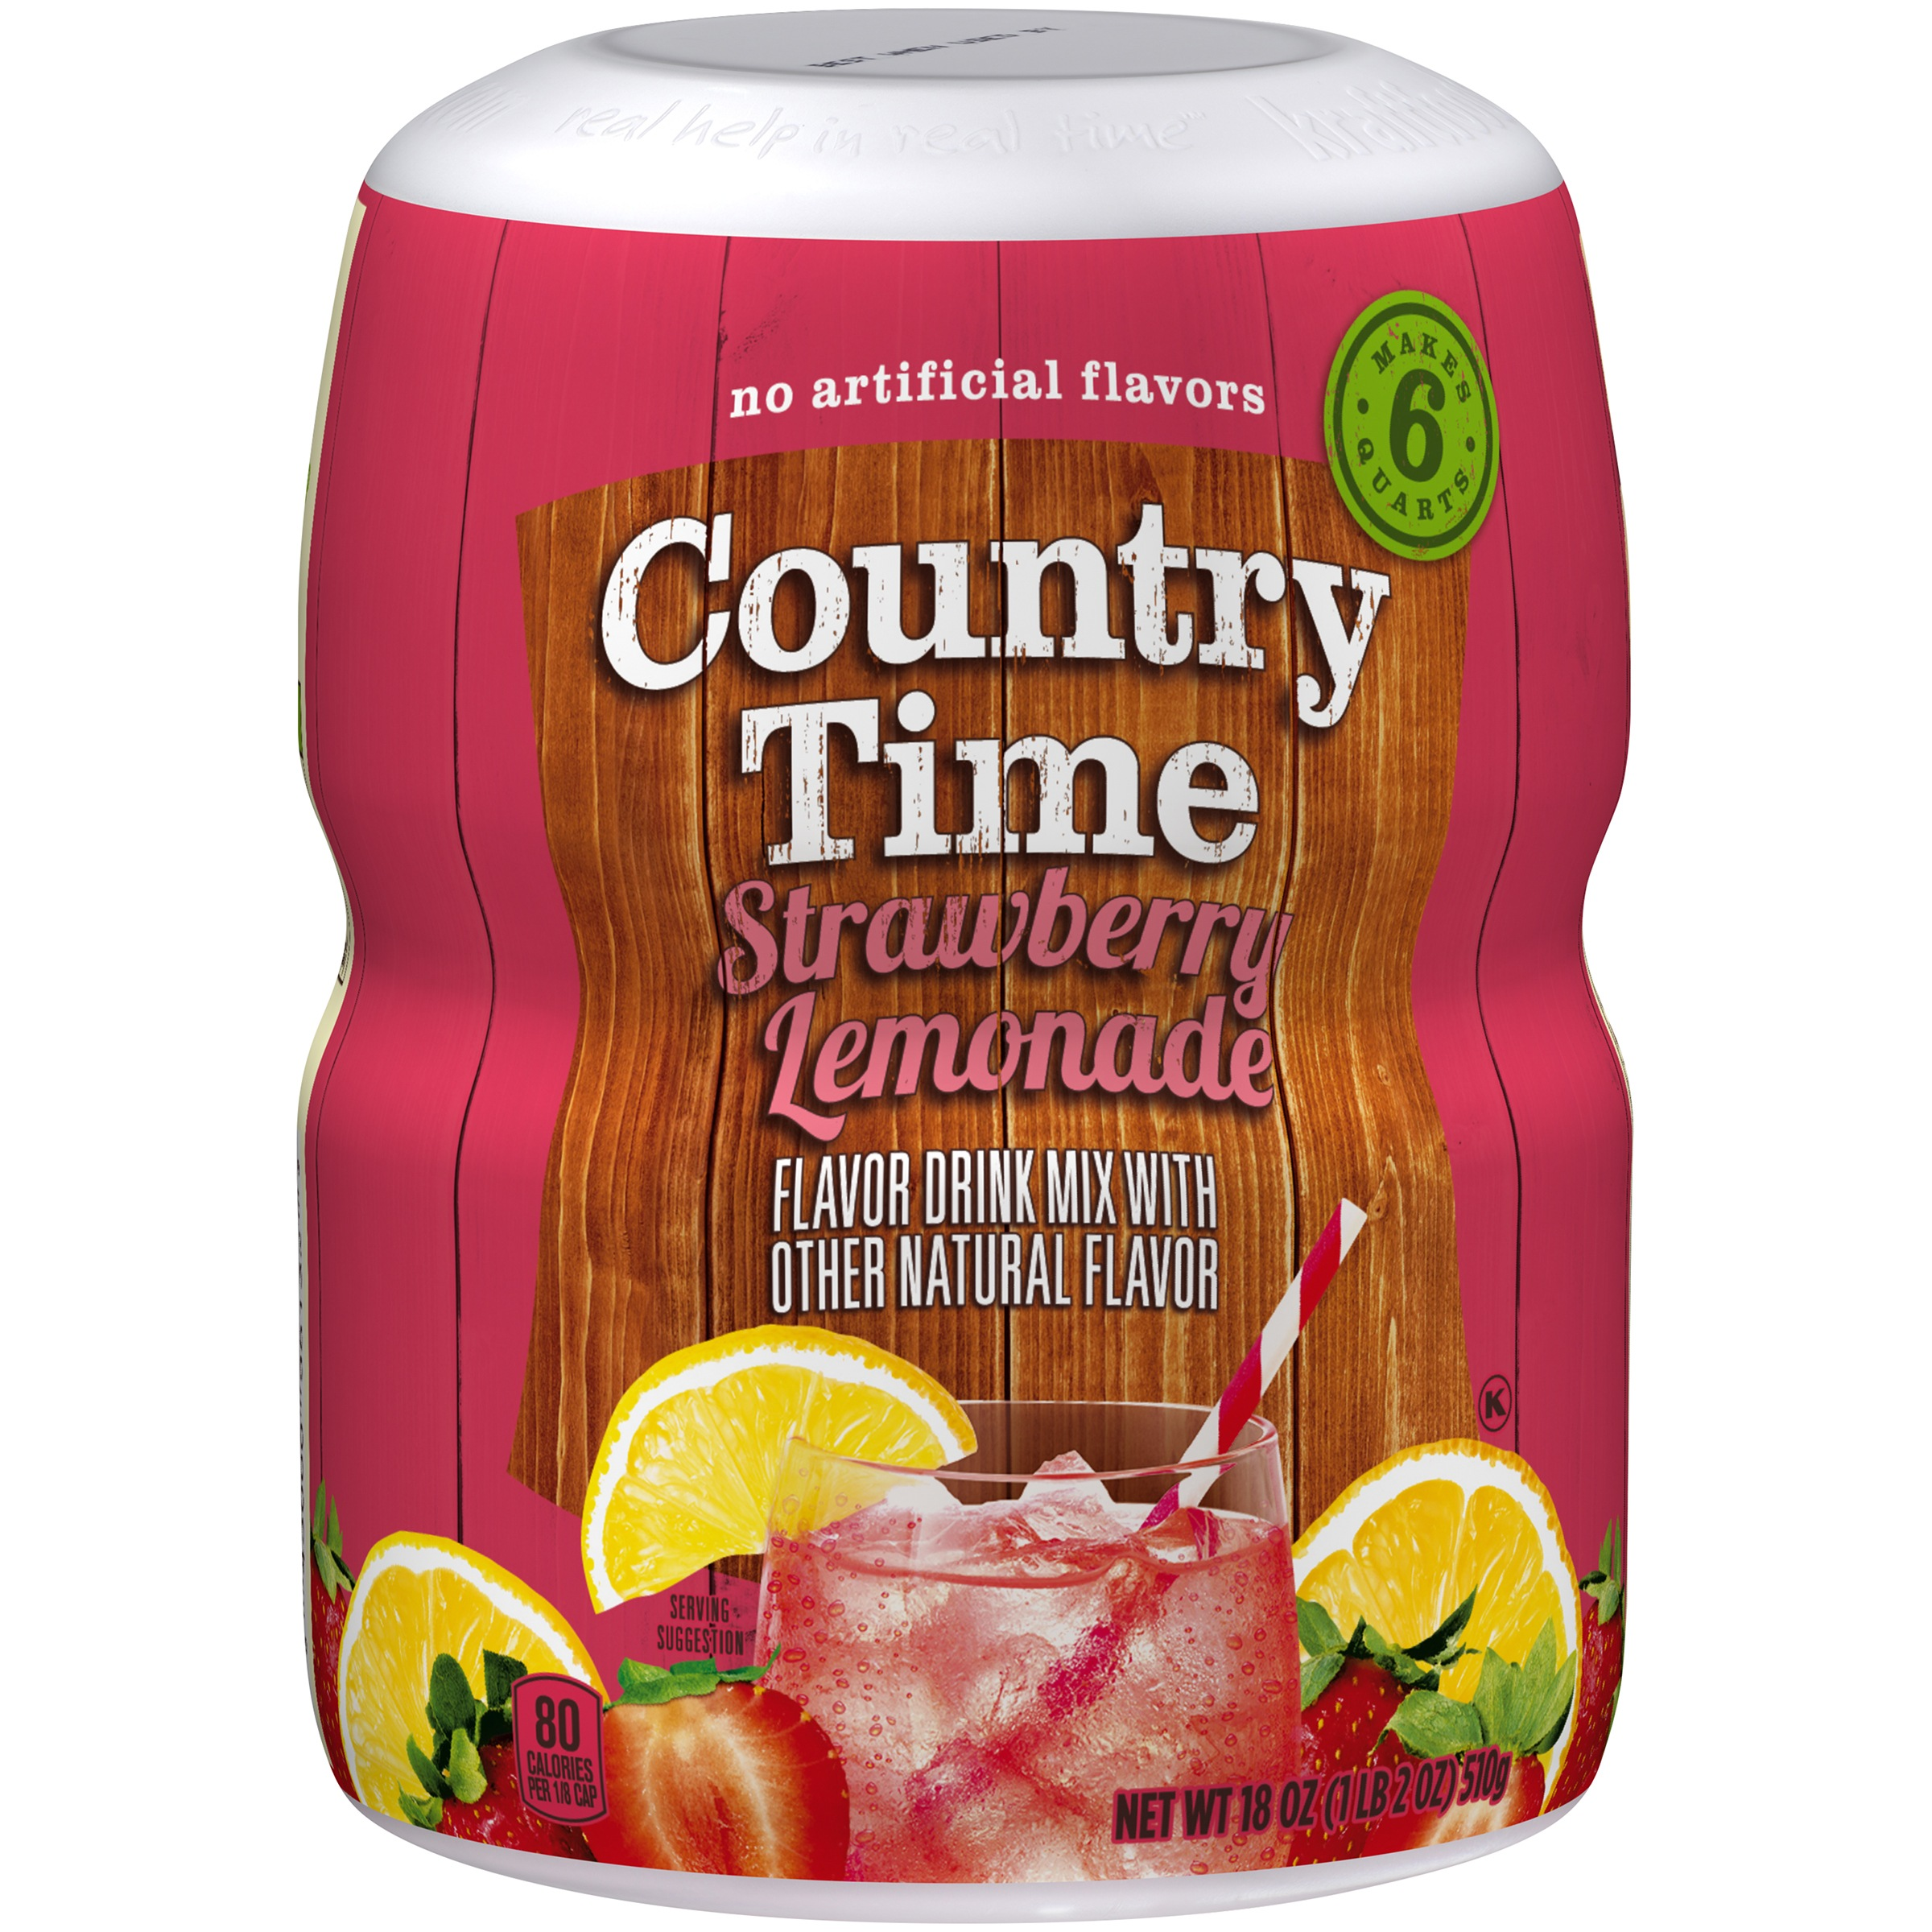 Country Time Strawberry Lemonade Drink Mix 18 oz. Jar